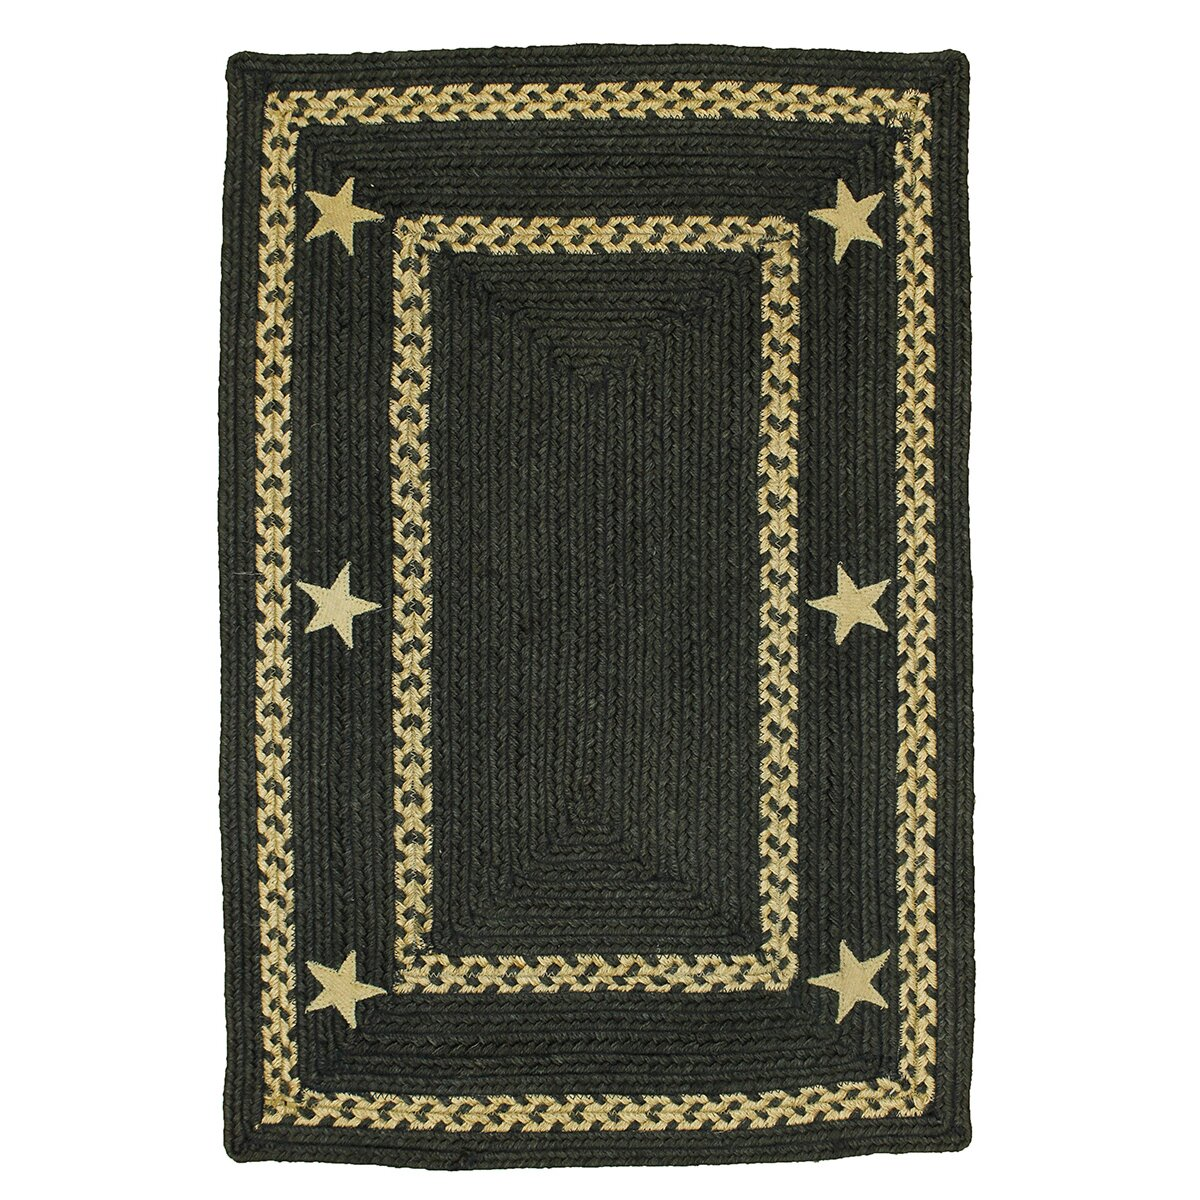 Homespice decor texas star jute braided black area rug reviews wayfair - Rugs and home decor decor ...